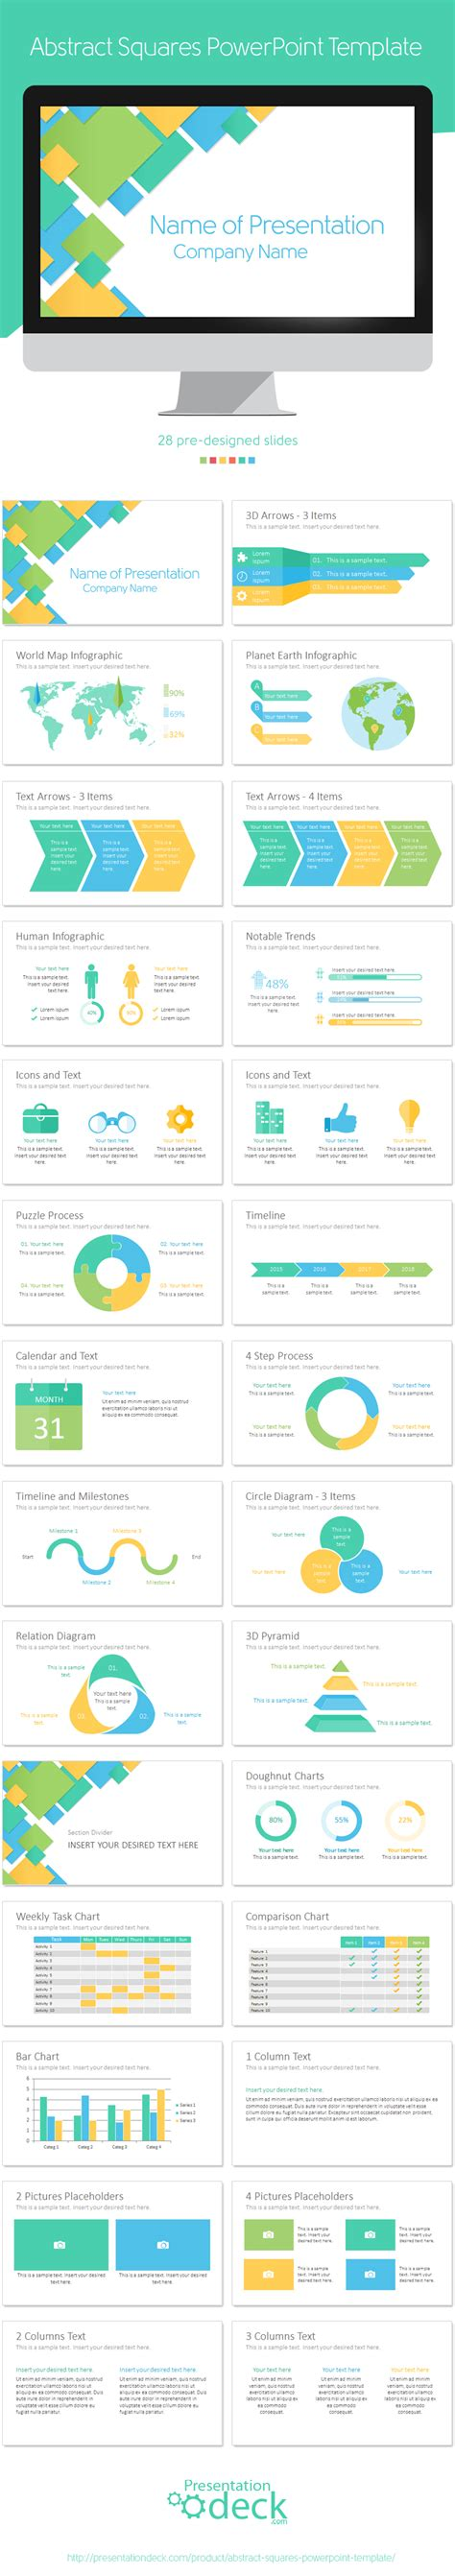 squares powerpoint template abstract squares powerpoint template ppt presentation